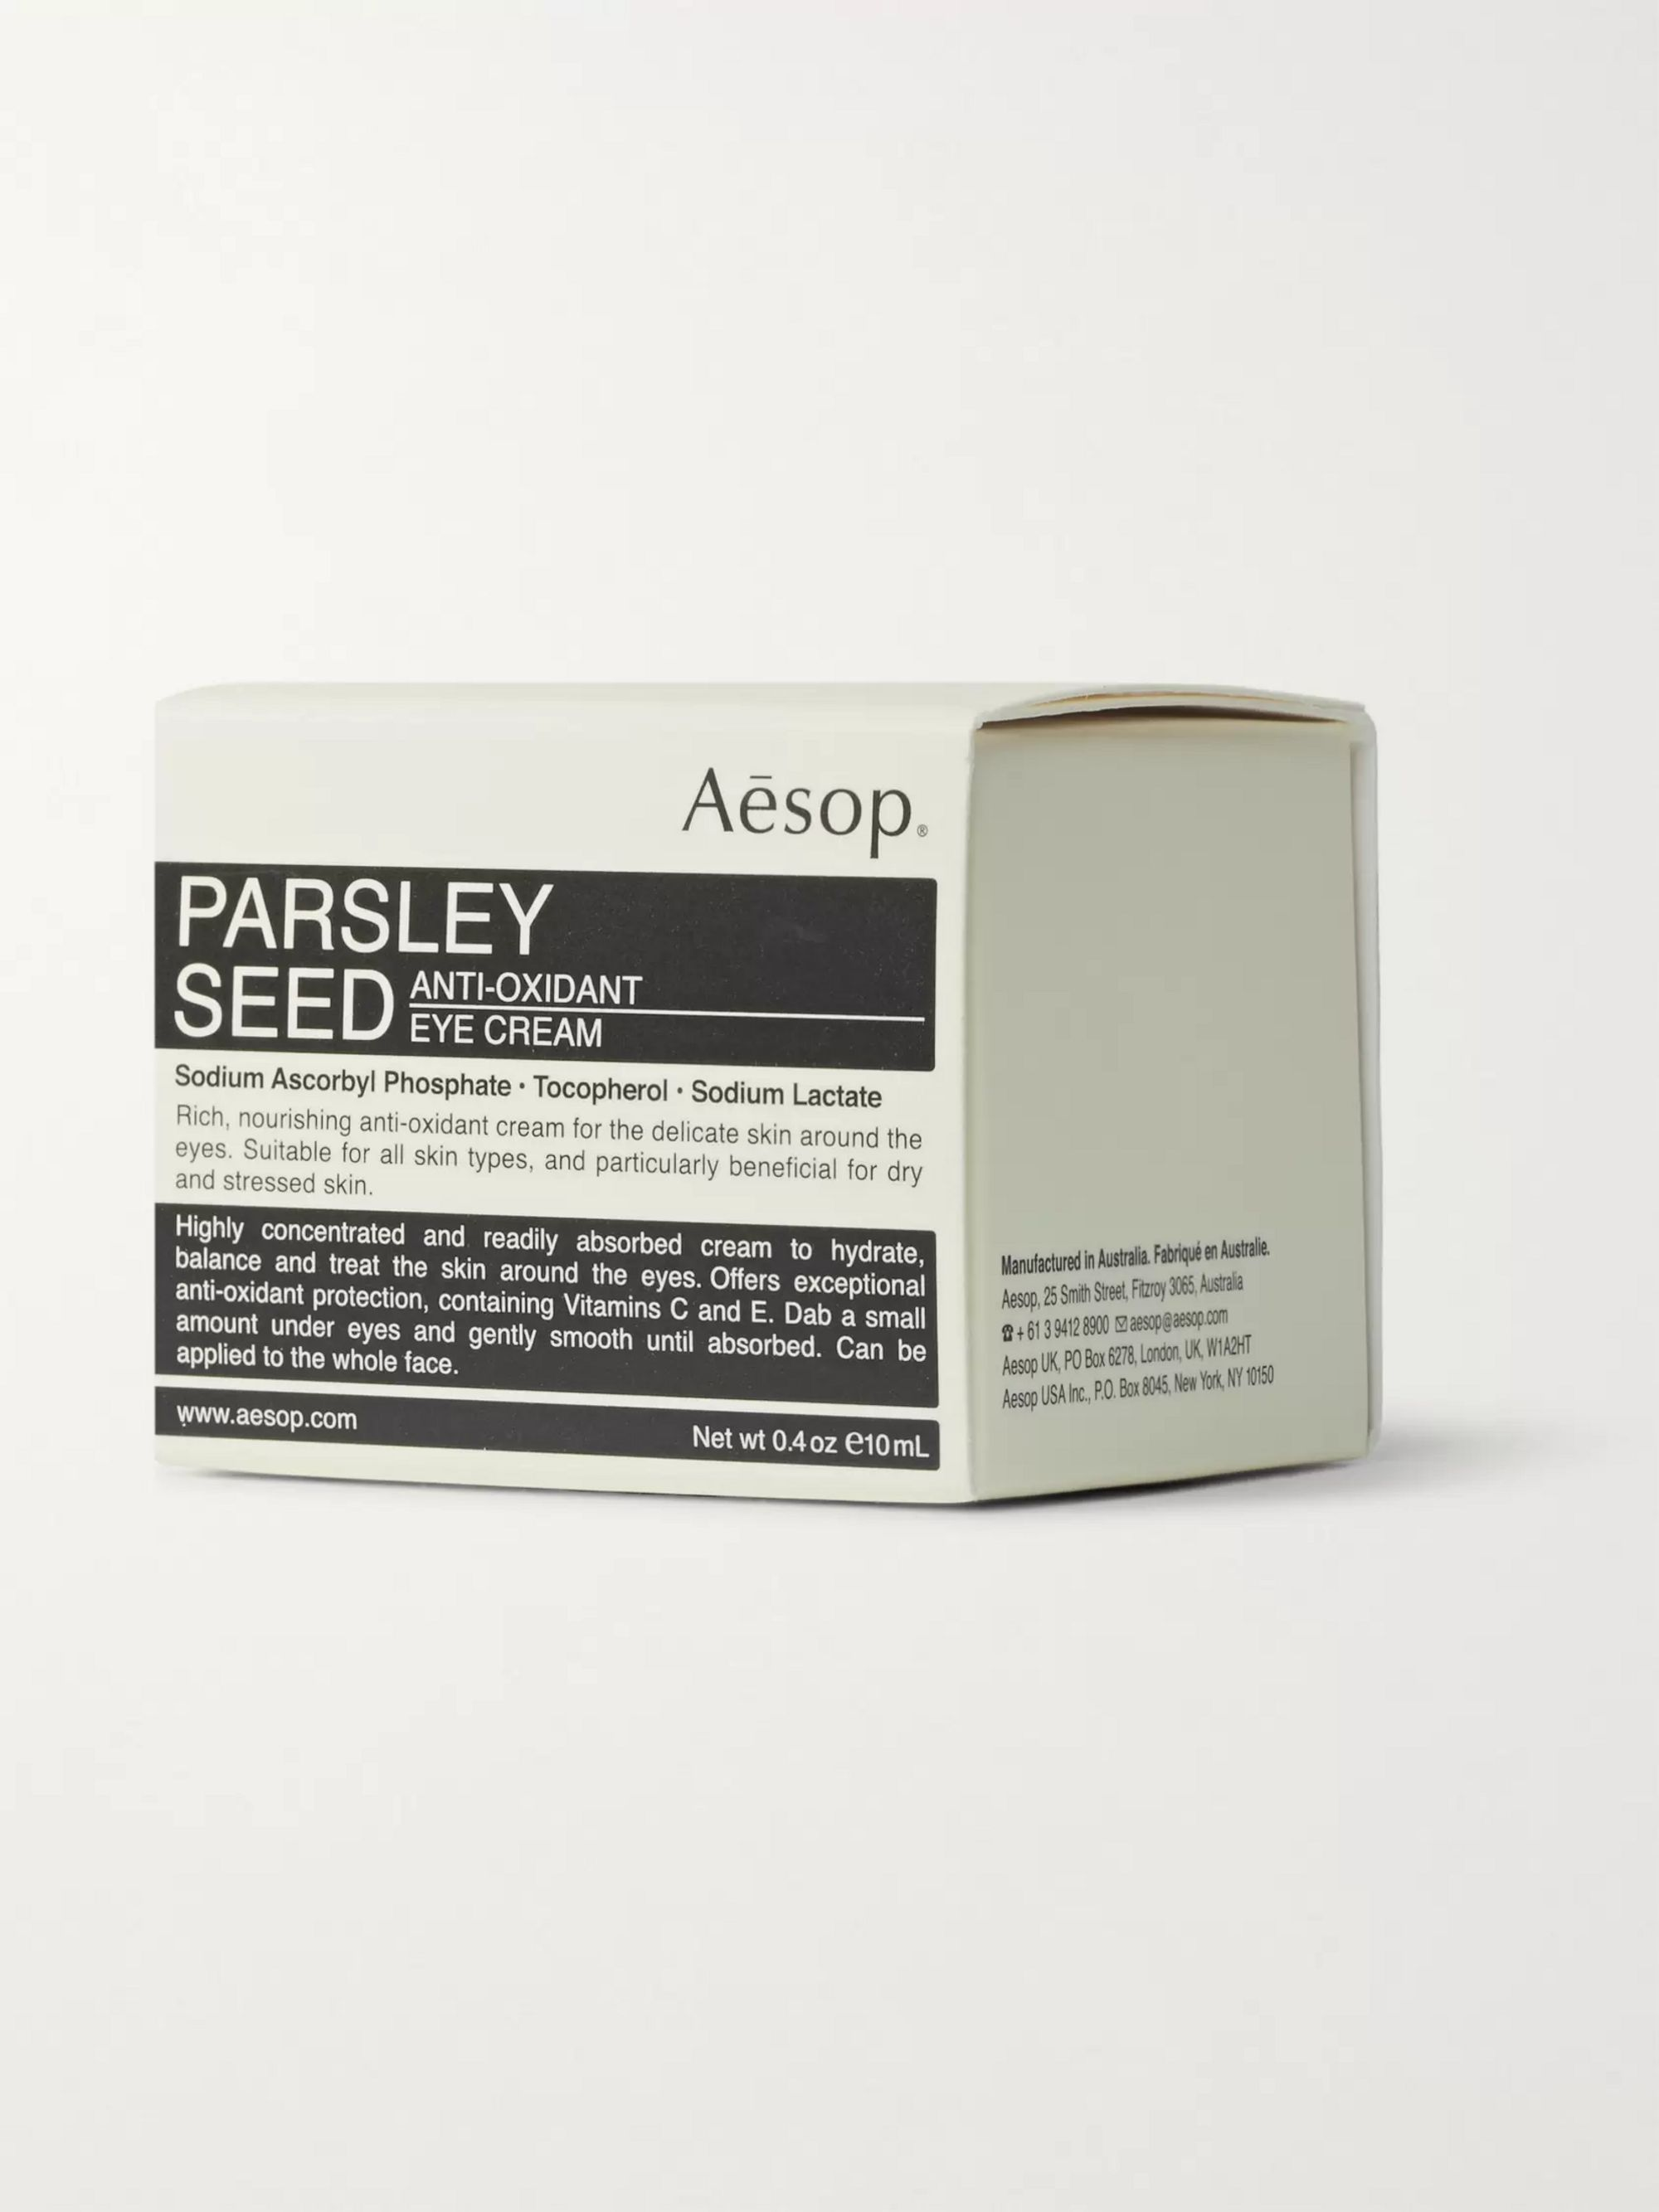 AESOP Parsley Seed Anti-Oxidant Eye Cream, 10ml